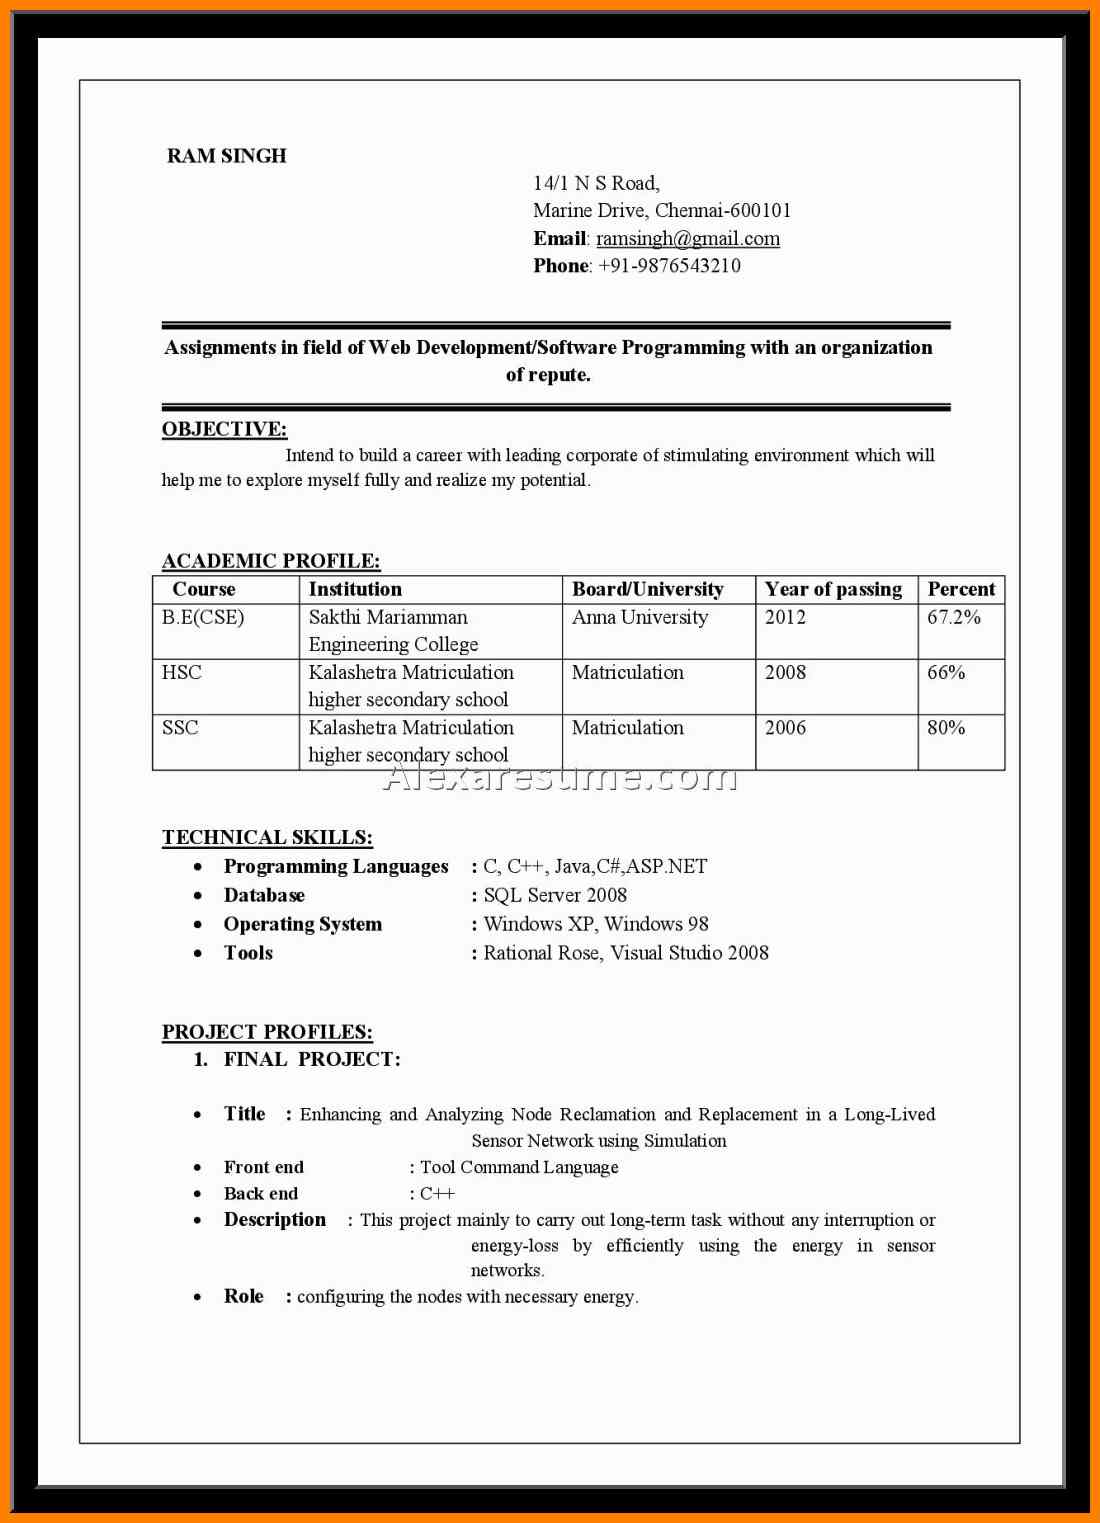 Model Resume In Word Format North.fourthwall.co Throughout Simple Resume Format For Freshers In Ms Word